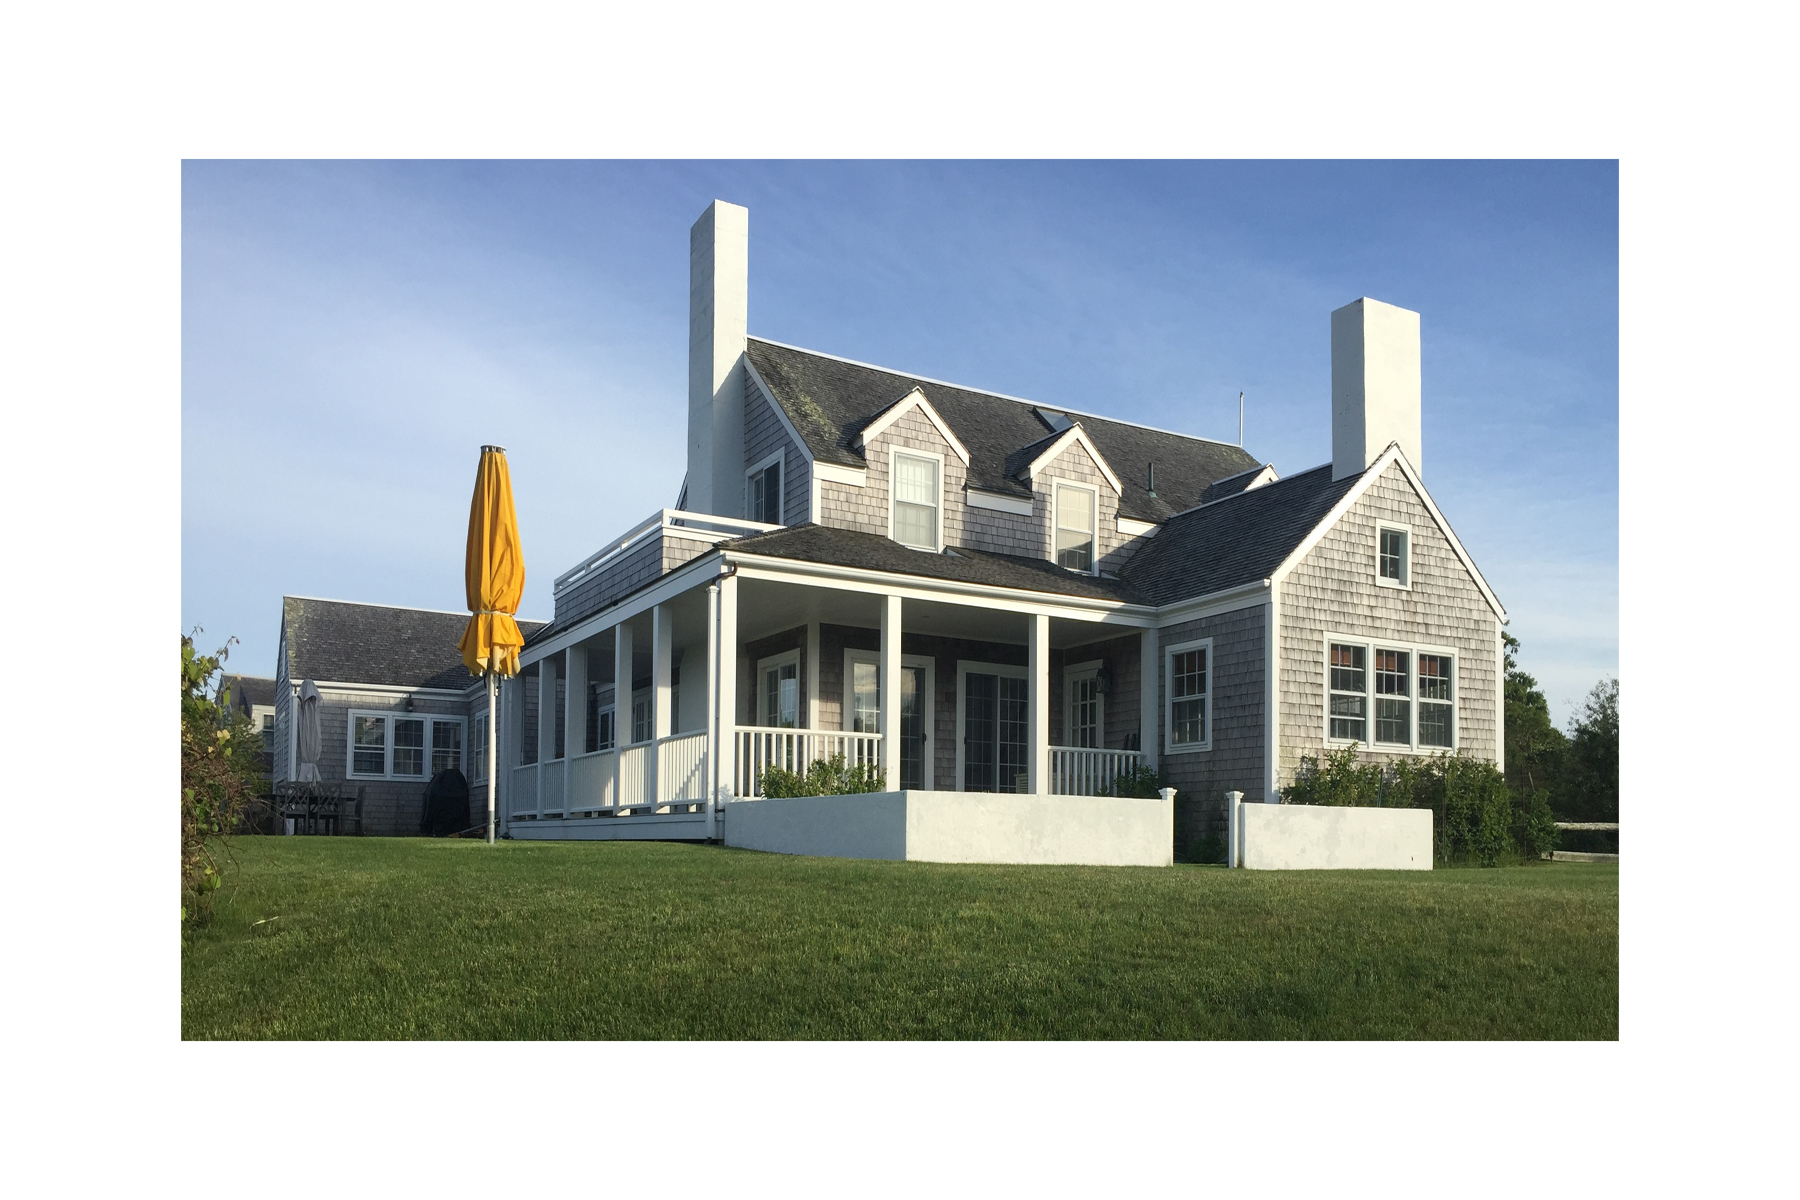 Single Family Home for Sale at West Polpis Harbor 222 Polpis Road Nantucket, Massachusetts 02554 United States